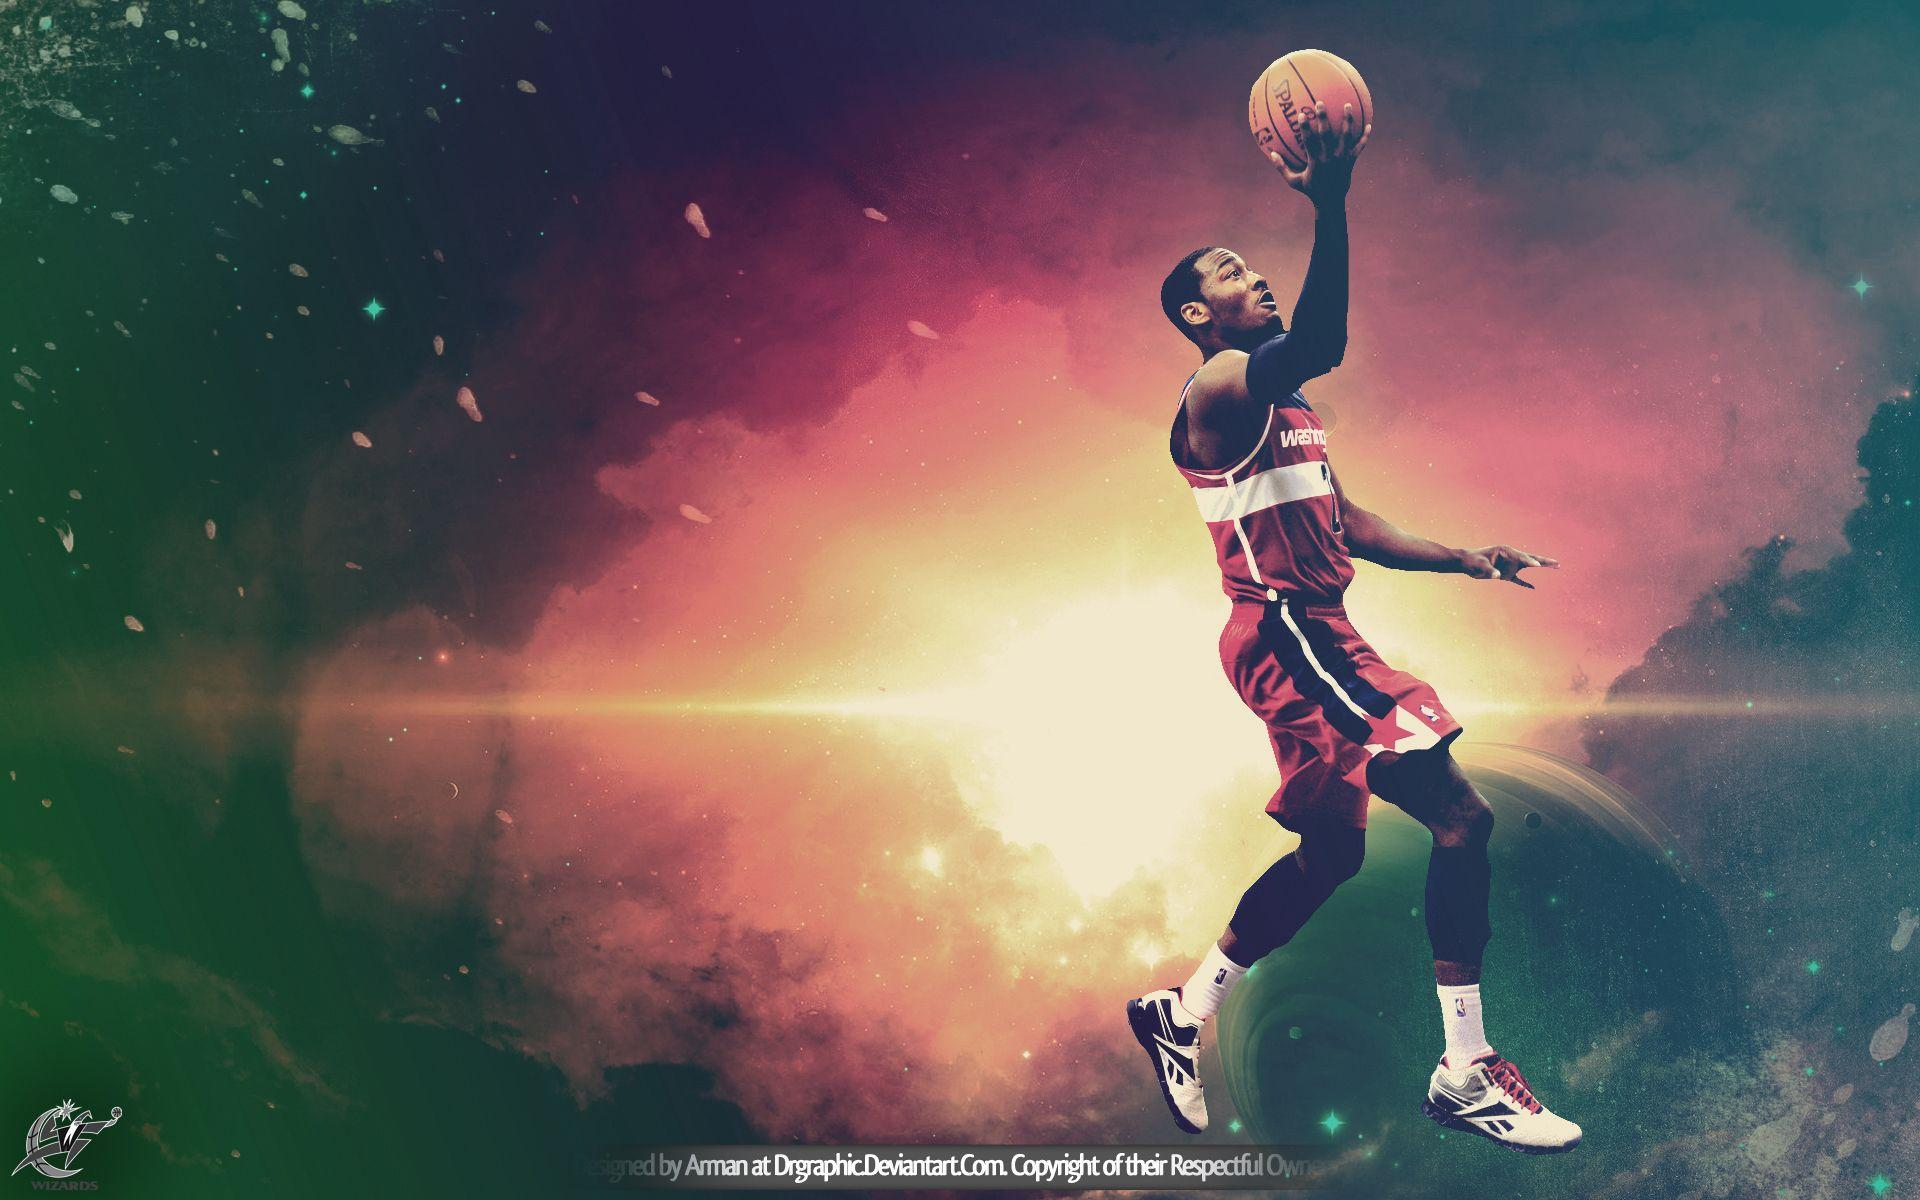 John Wall Wallpaper by drgraphic on DeviantArt